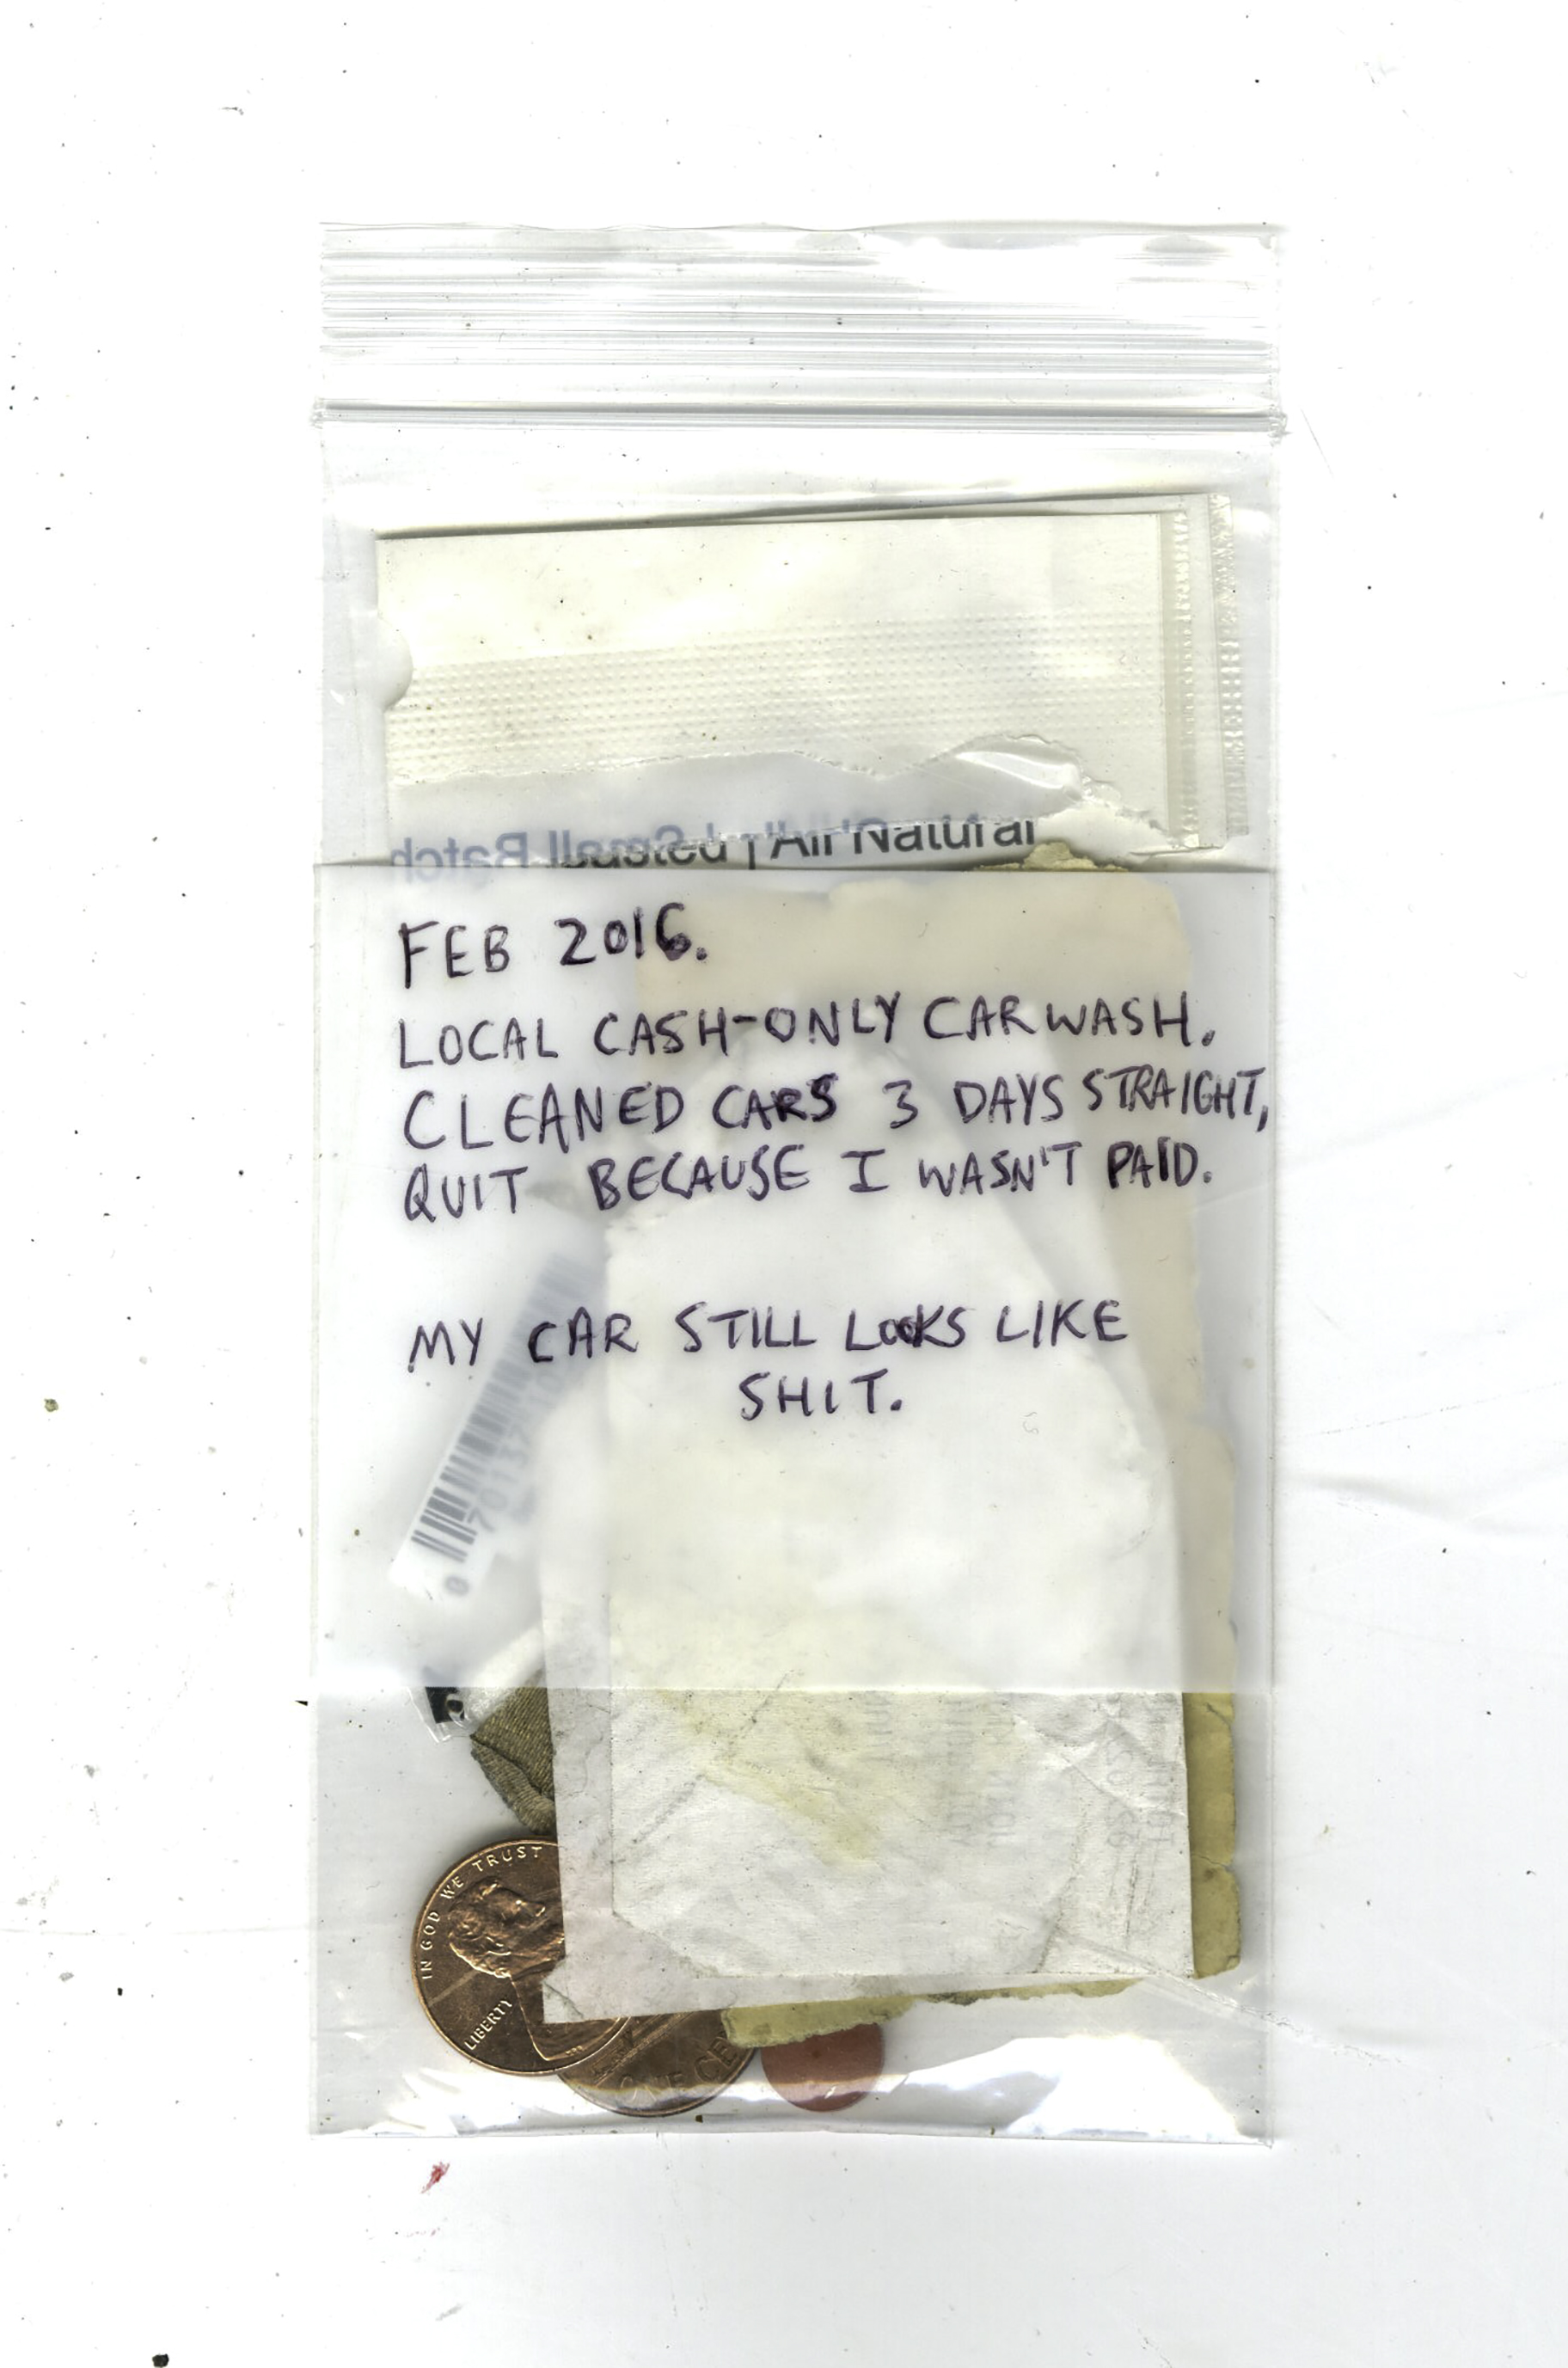 Feb 2016. Local cash-only car wash. Cleaned cars 3 days straight. Quit because I wasn't paid. My car still looks like shit. , paper, Band-Aid, 2 pennies, ibuprofen, Wine Black & Mild wrapper, garbage, street debris, bag, 2016